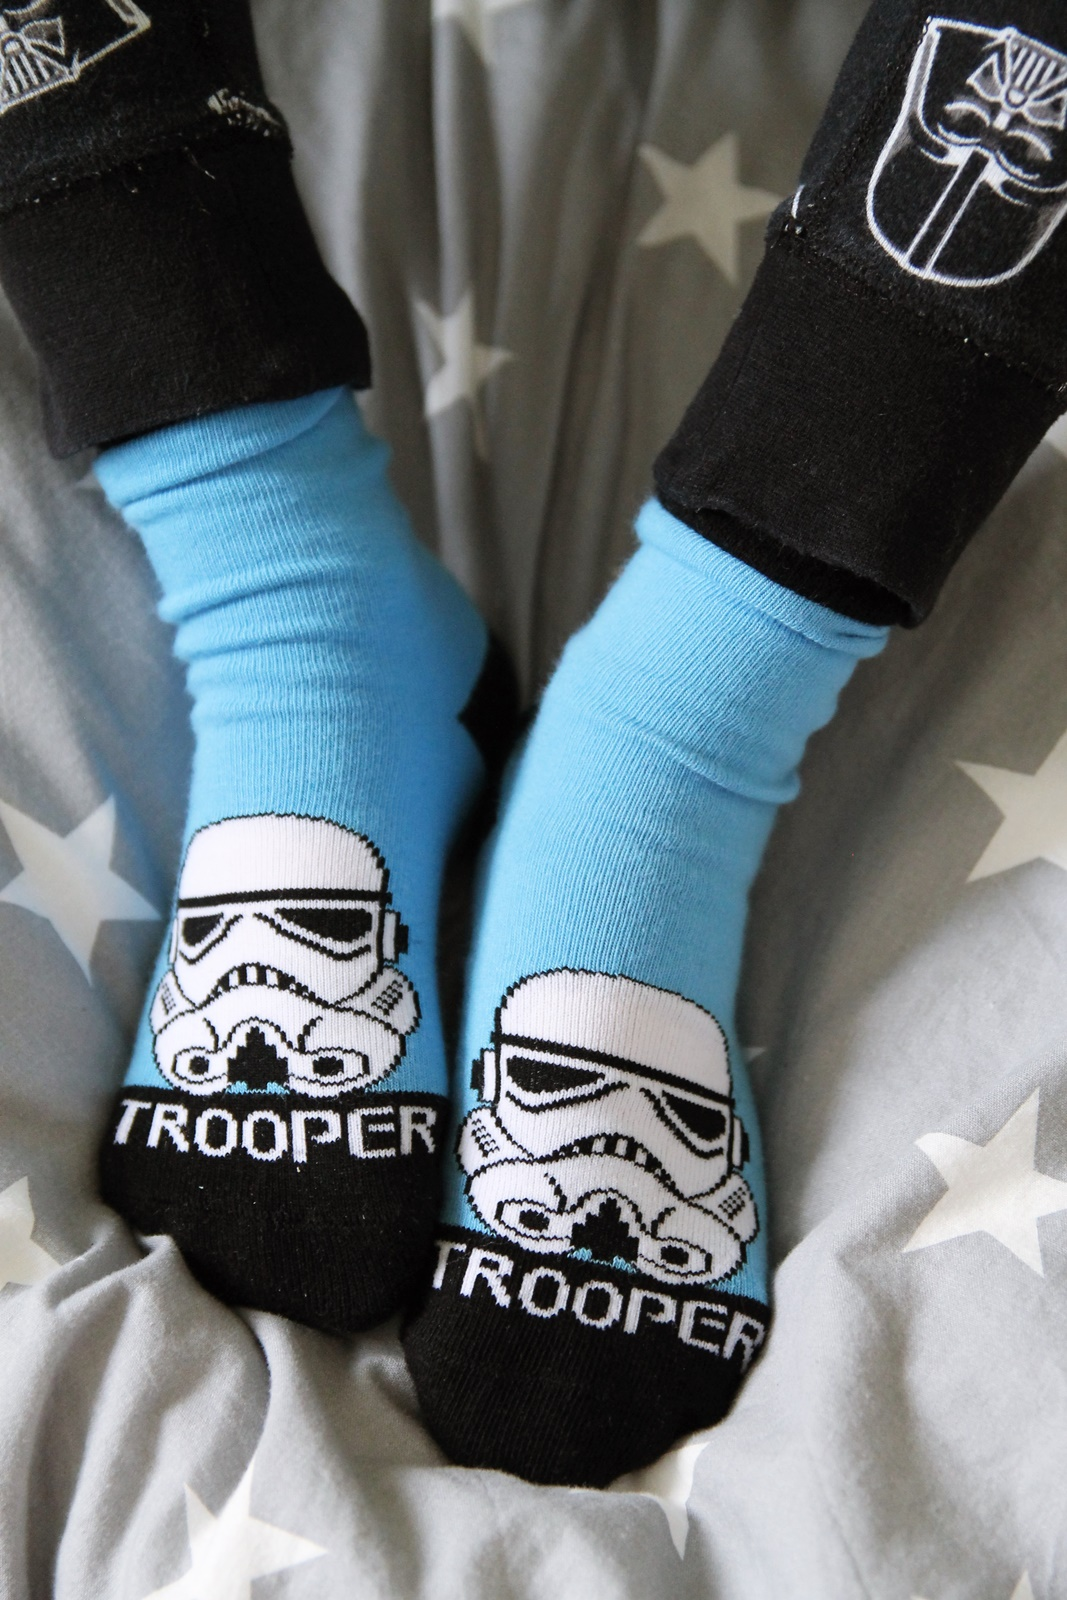 Star Wars Trooper socks